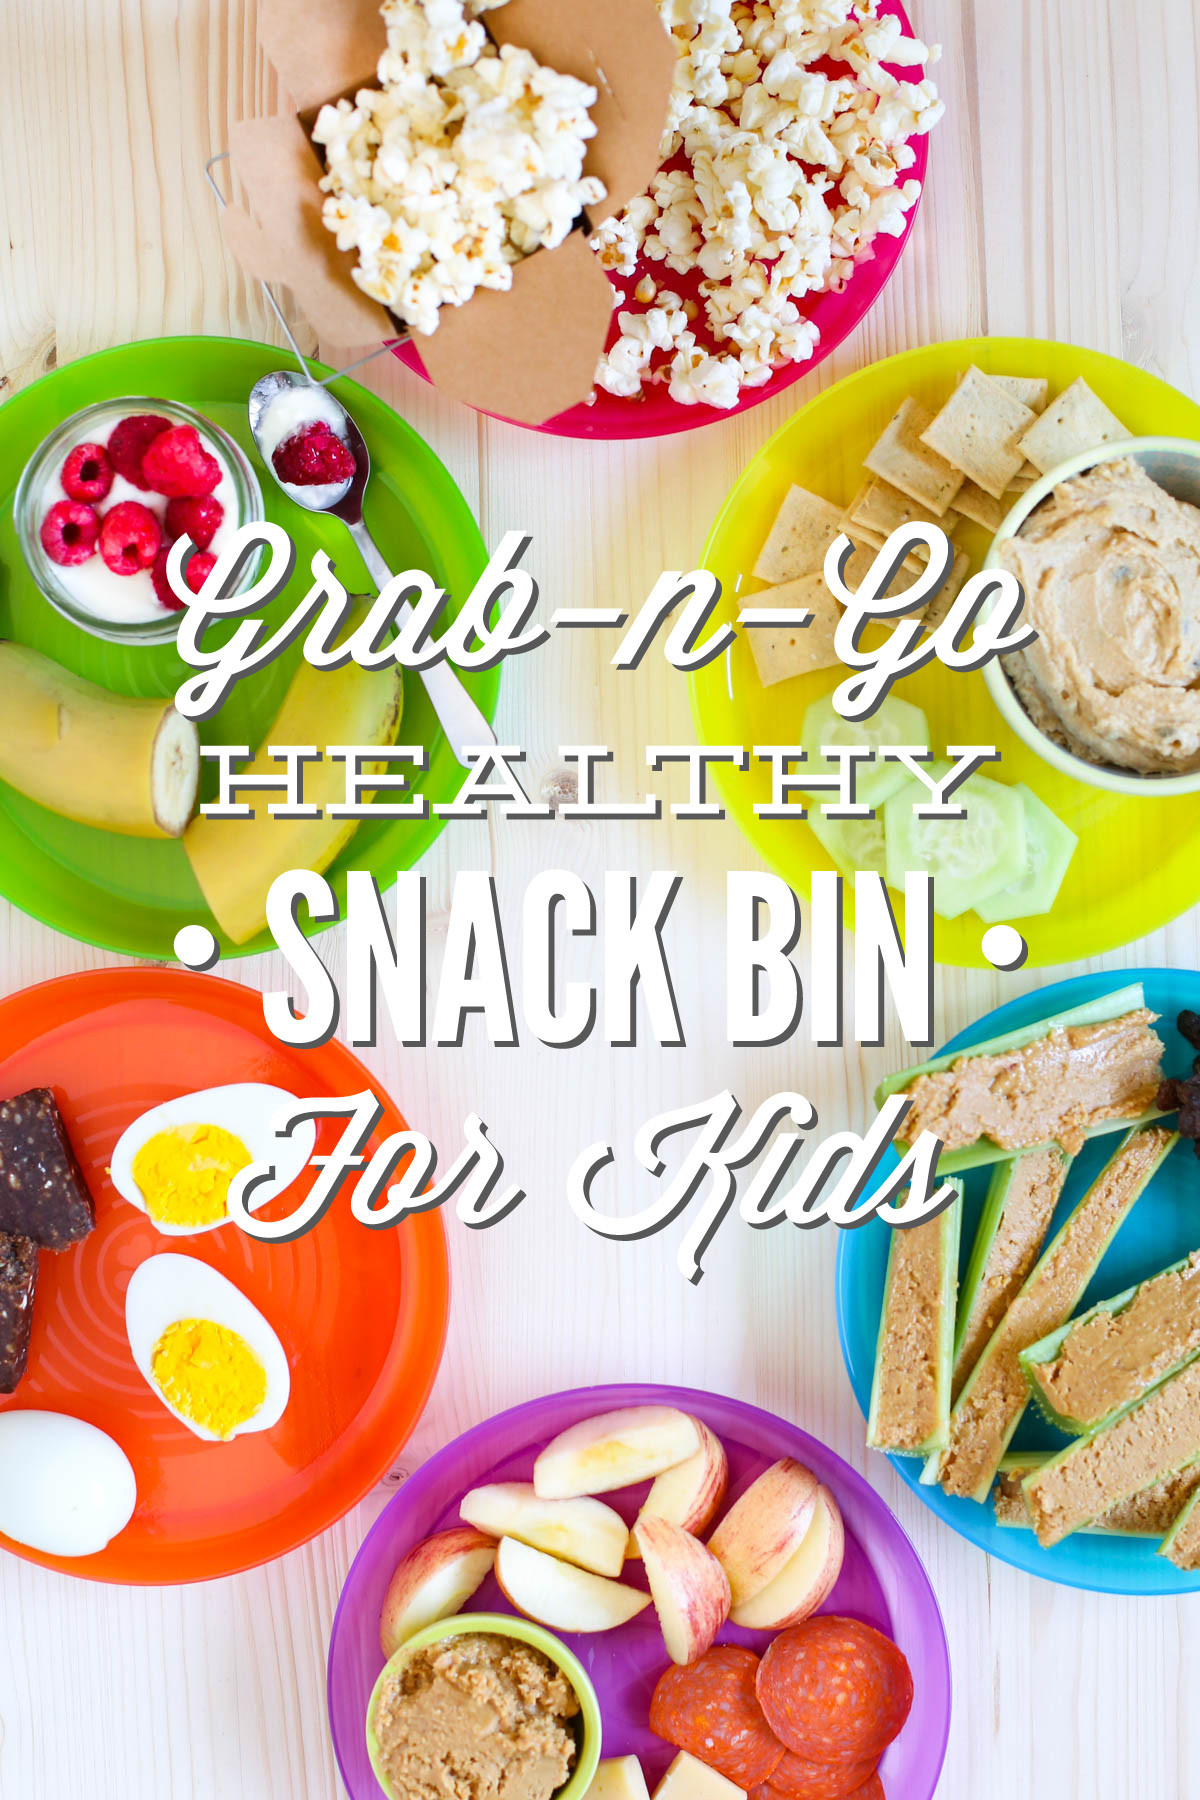 Healthy Snacks On The Go  Simplify Snack Time Grab n Go Healthy Snack Bin for Kids